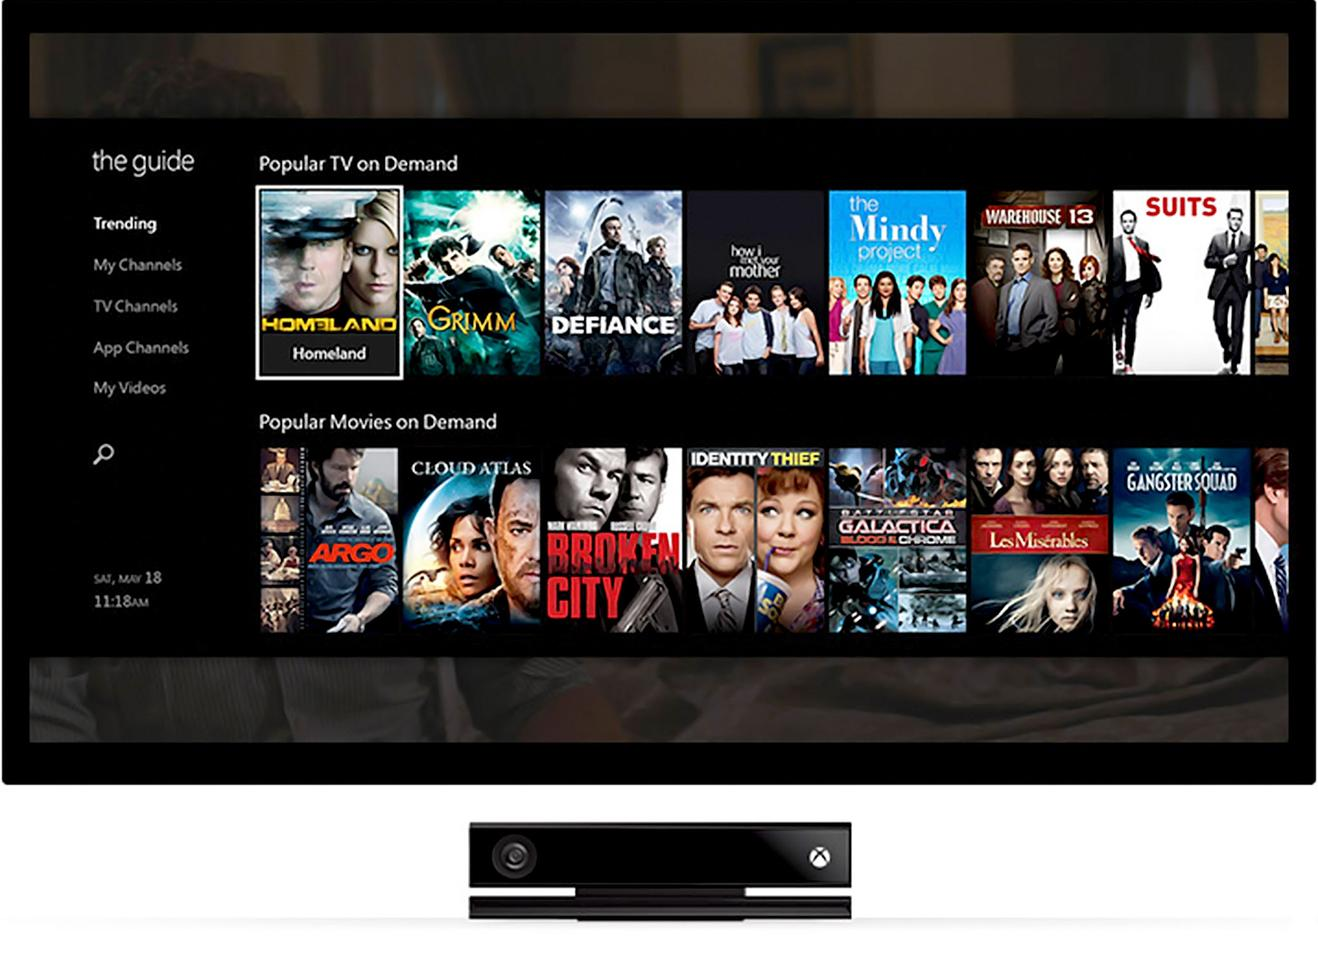 The Xbox One offers seamless integration between a variety of entertainment services